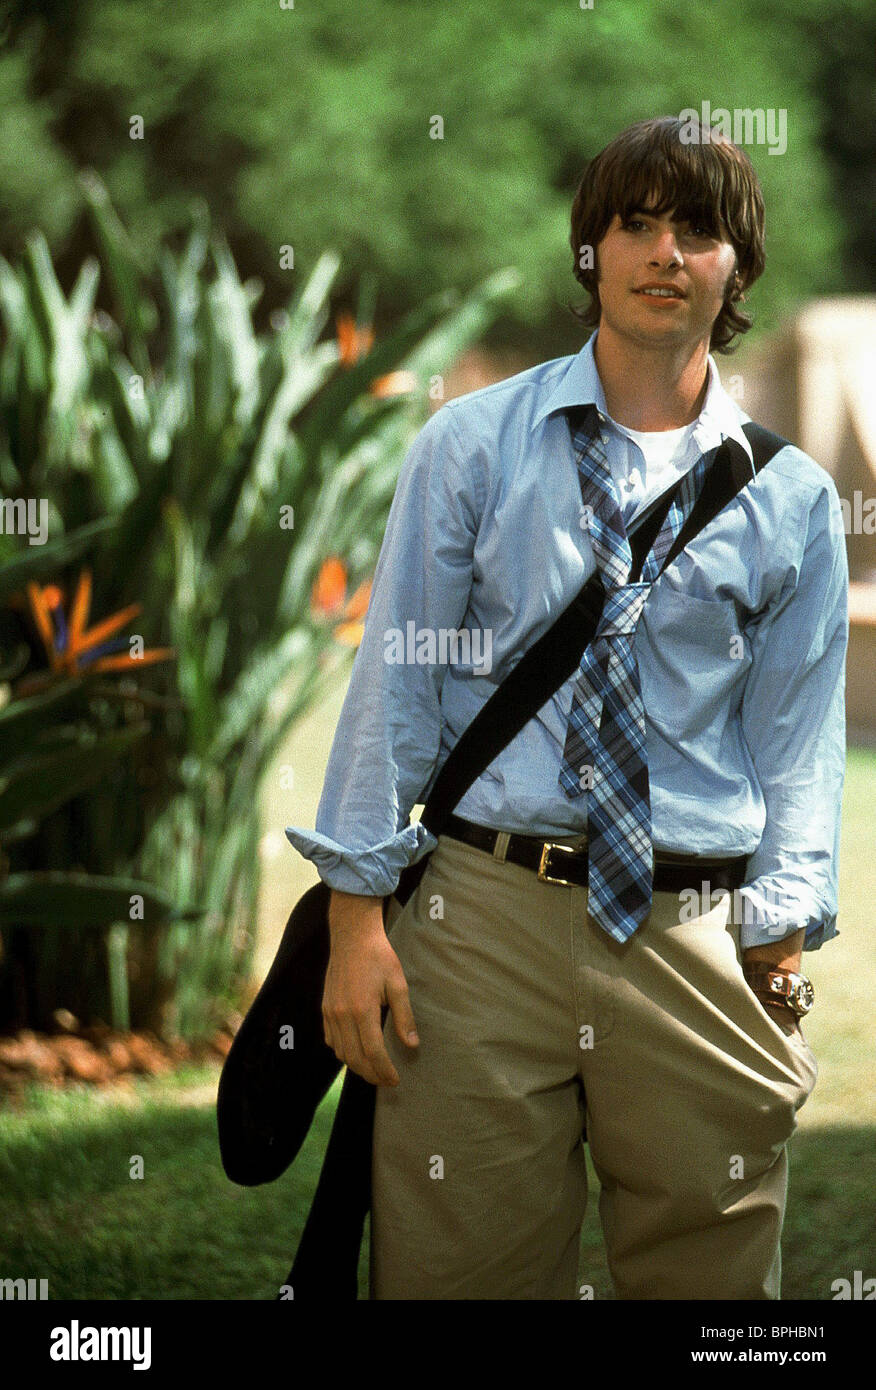 ROBERT SCHWARTZMAN THE PRINCESS DIARIES (2001 Stock Photo ...